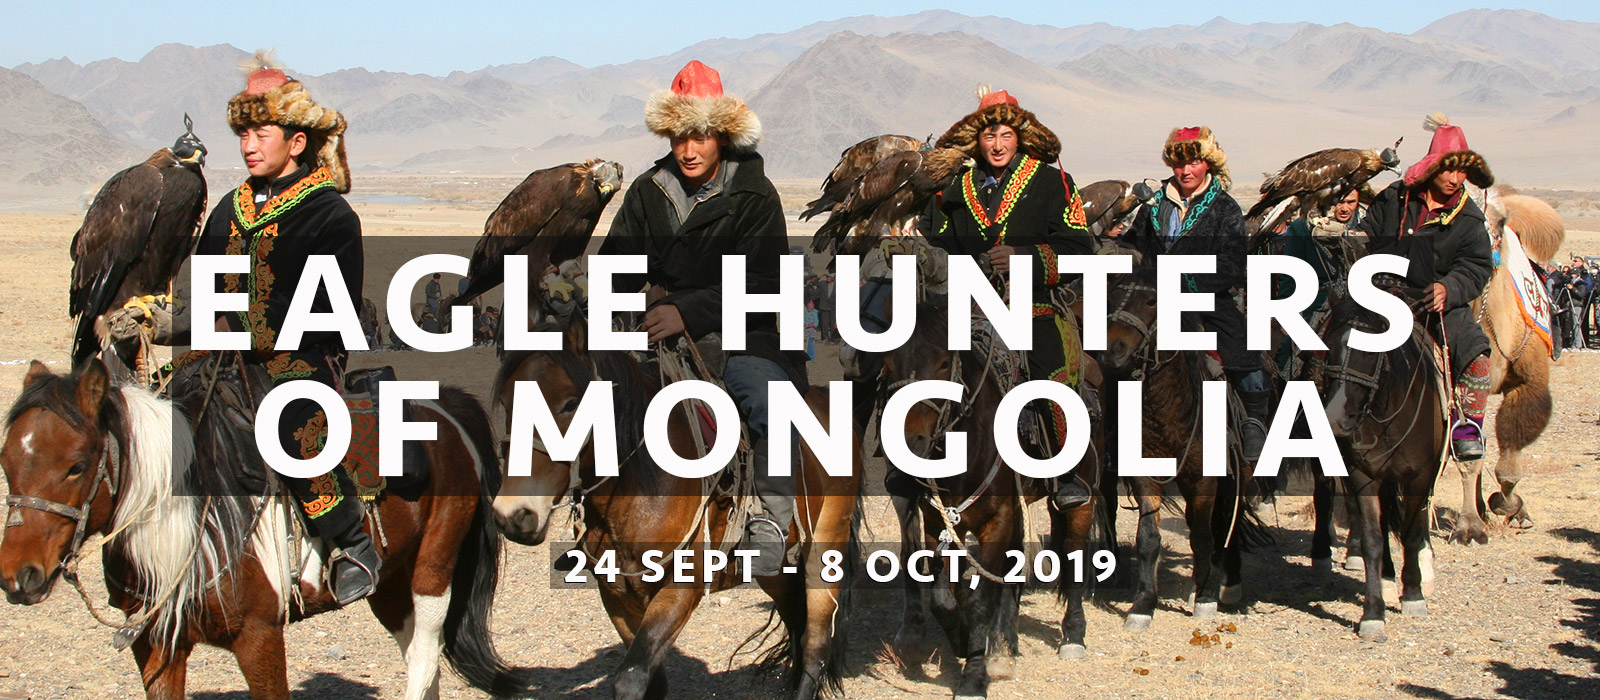 eagle-hunters-mongolia-photography-workshop-tour-expedition-sean-gallagher